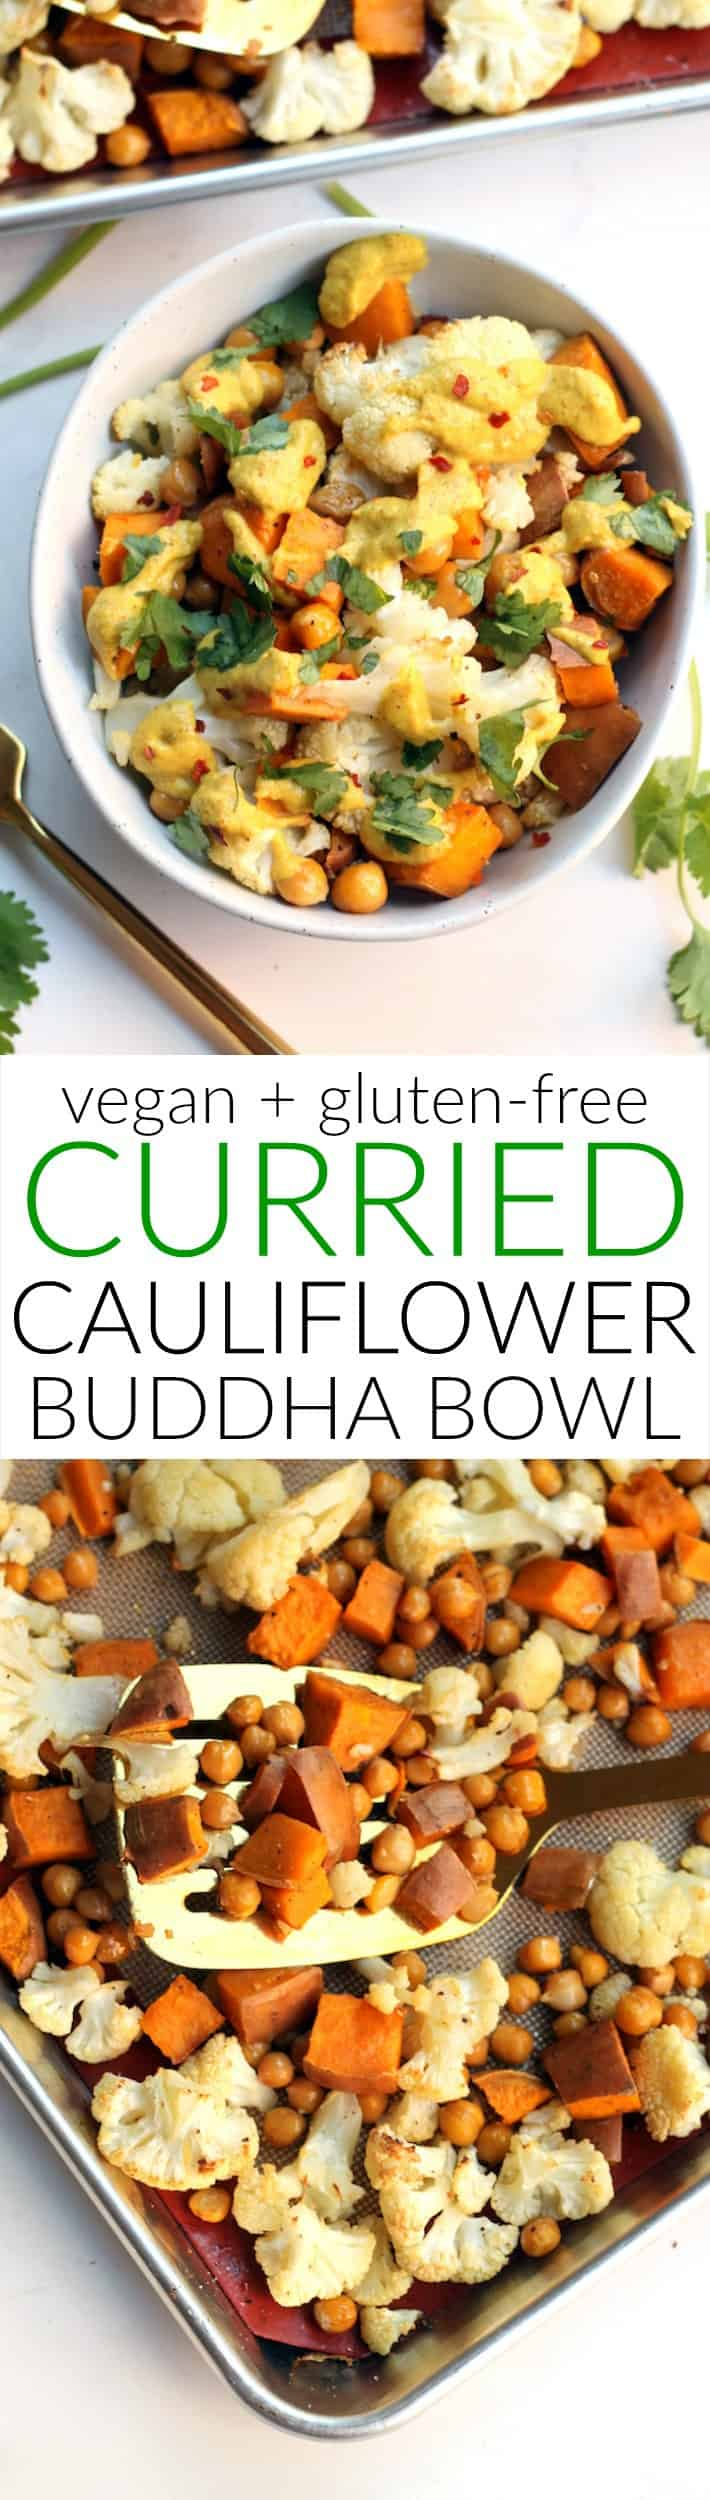 This one pan Curried Cauliflower Chickpea Buddha Bowl is an easy and delicious vegetarian meal that